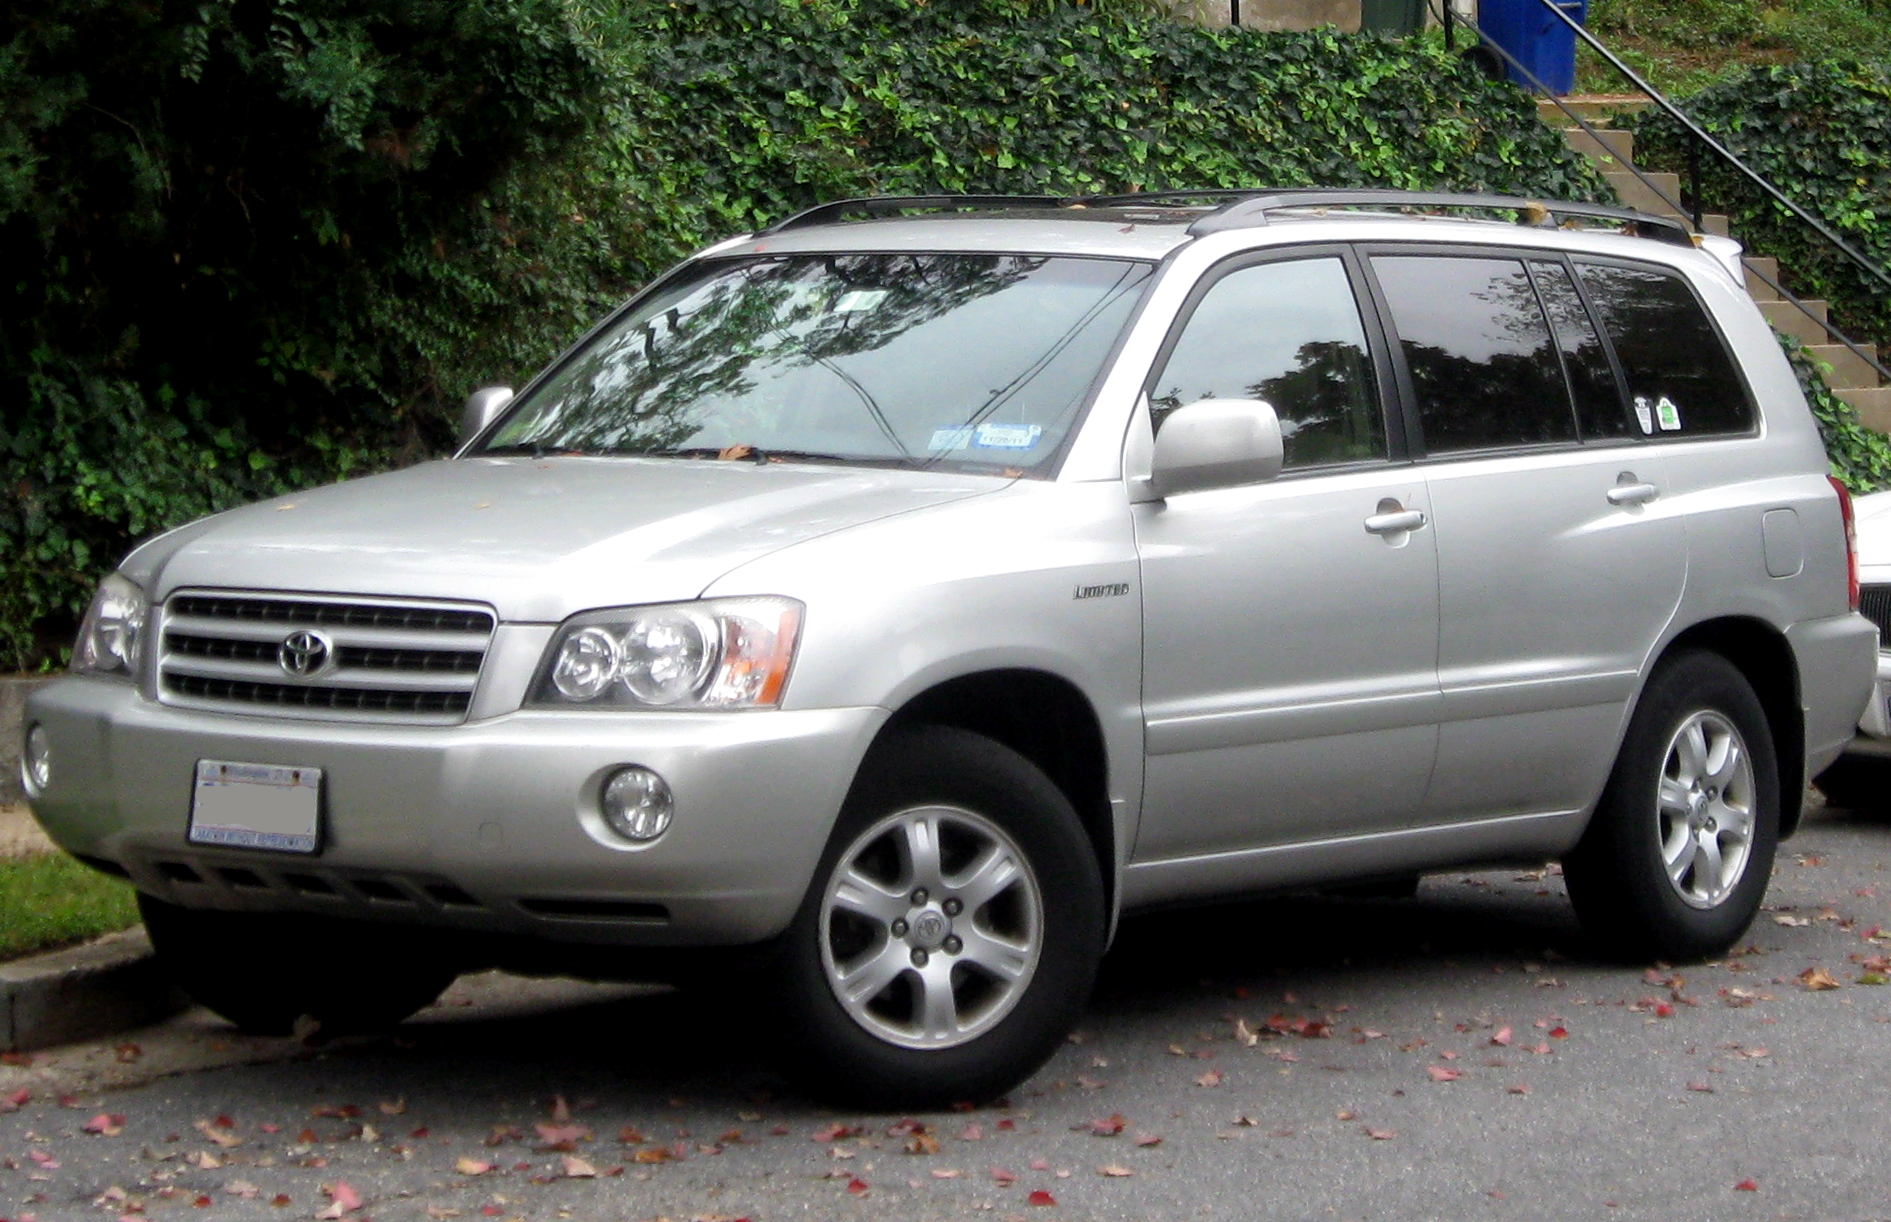 Toyota Highlanders 2016 >> File:2001-2003 Toyota Highlander Limited -- 10-12-2011.jpg - Wikimedia Commons